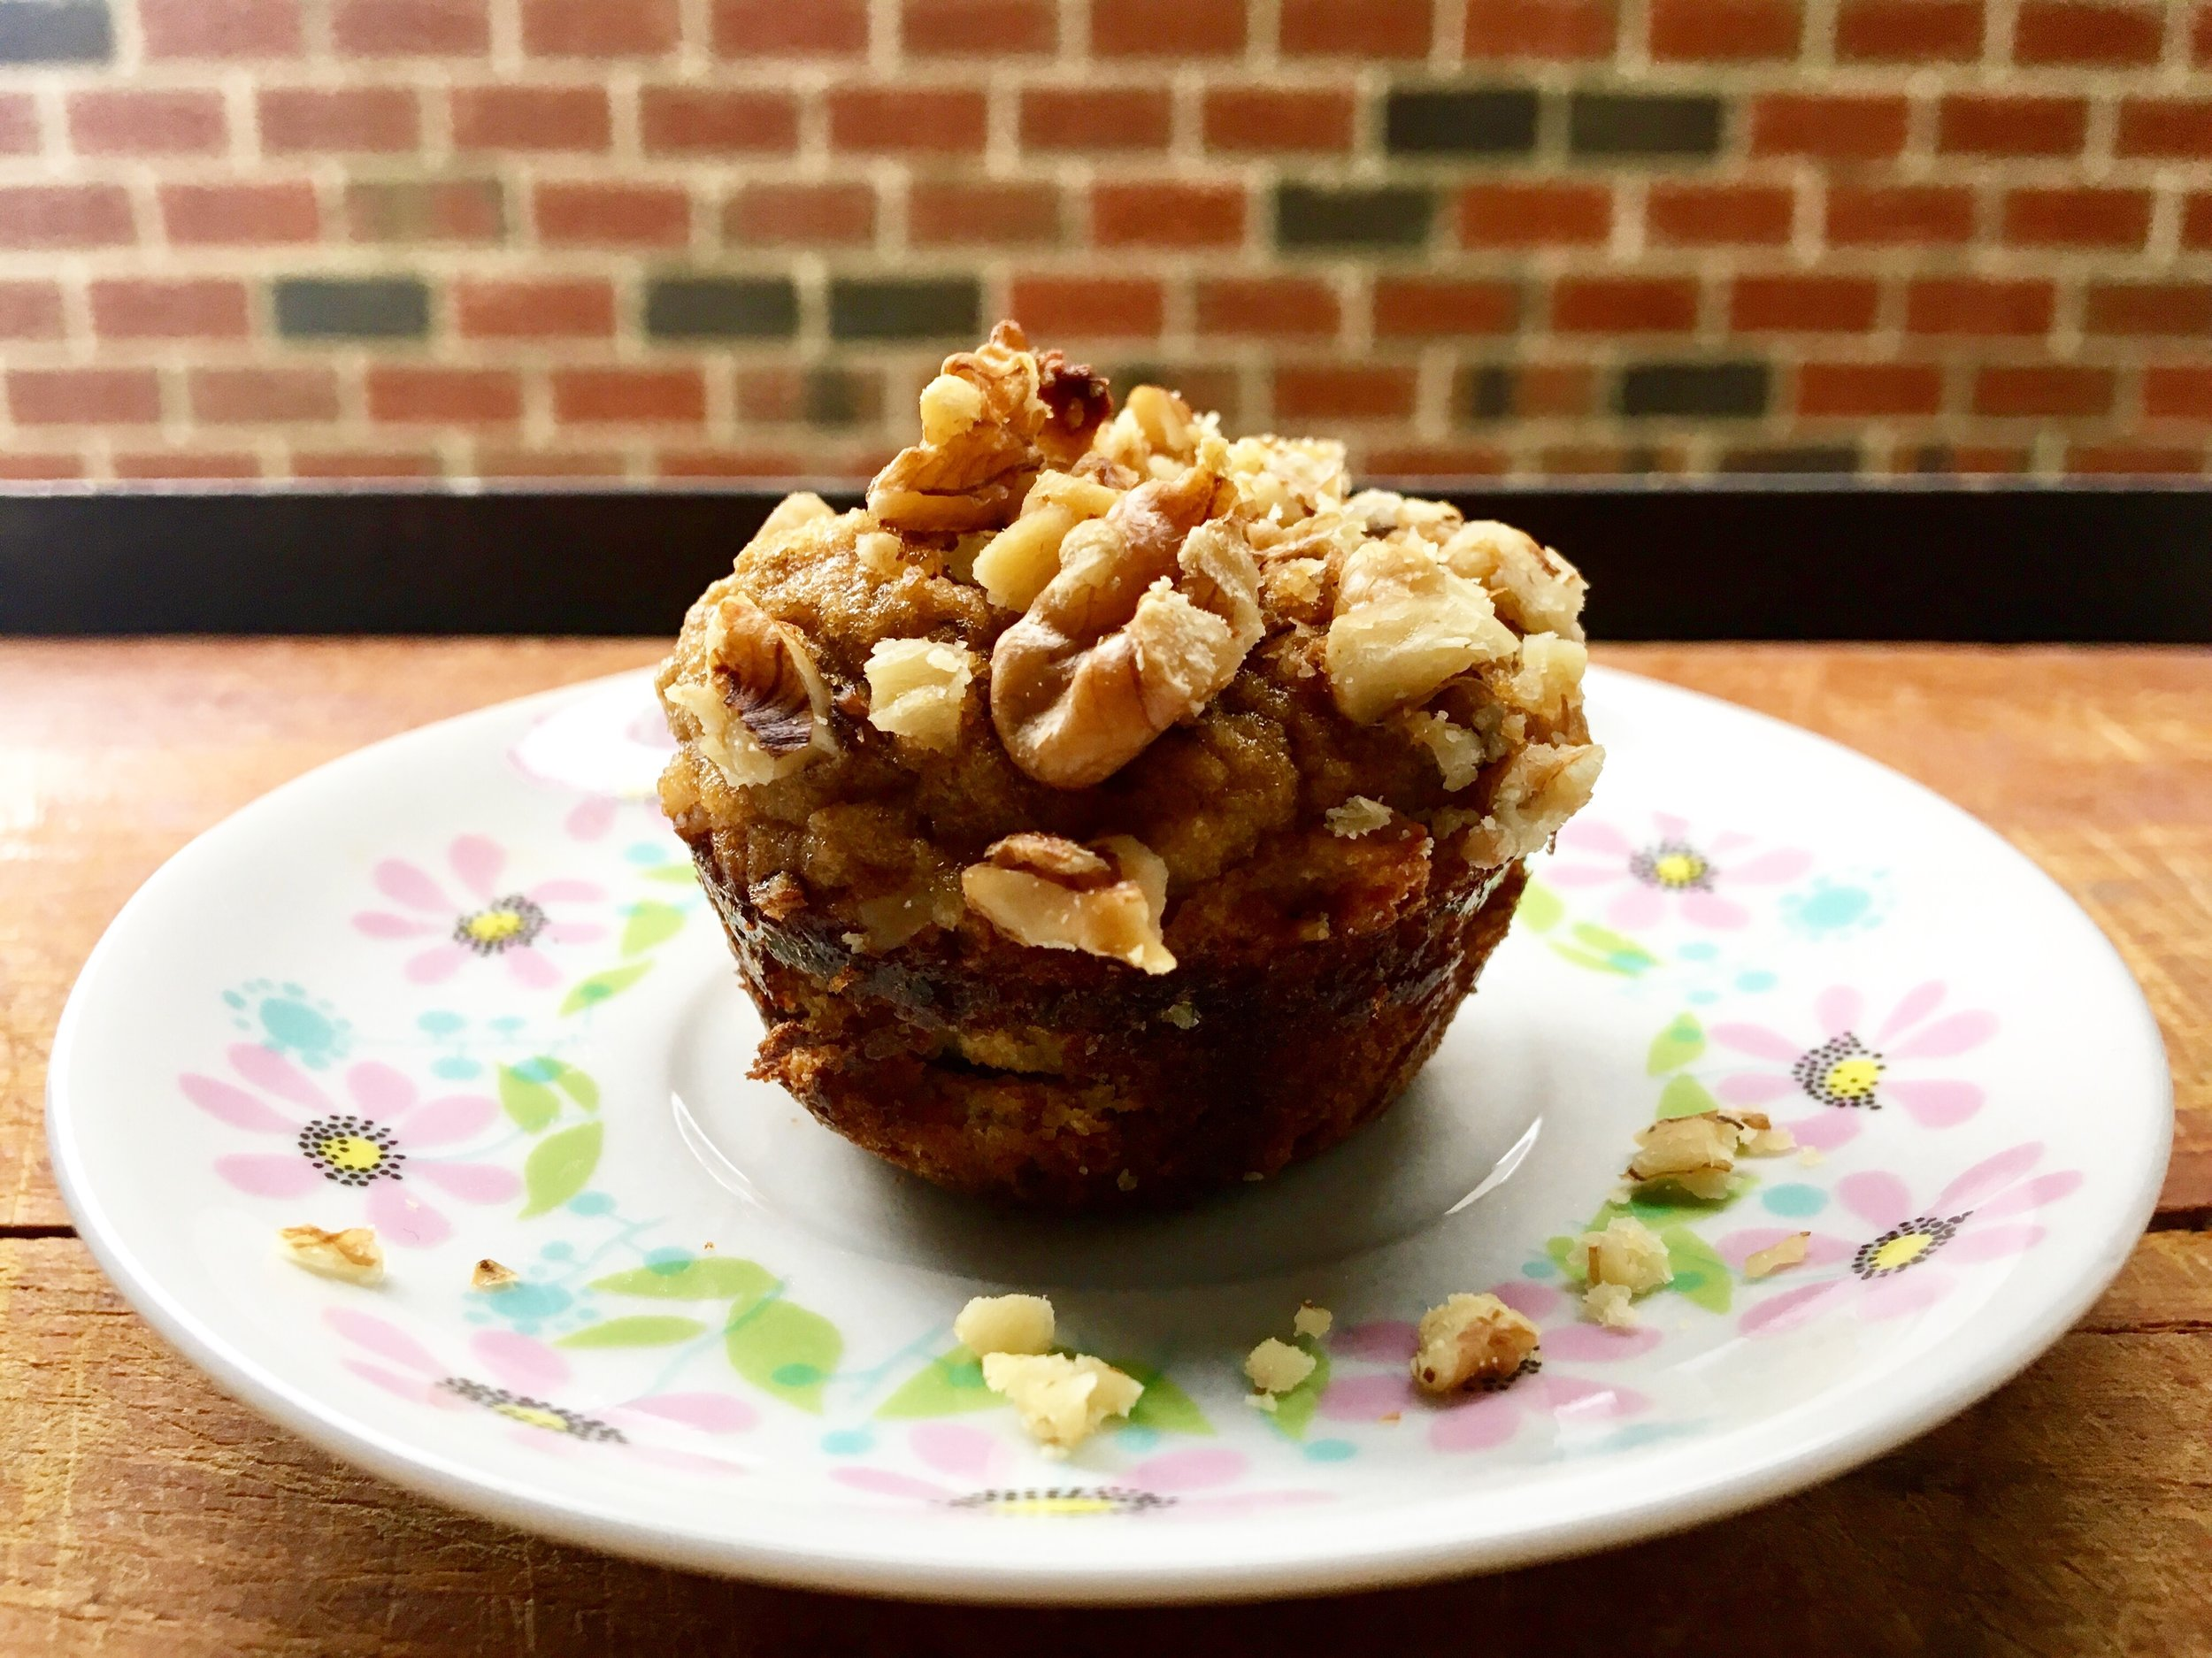 up close: grain free banana nut muffin